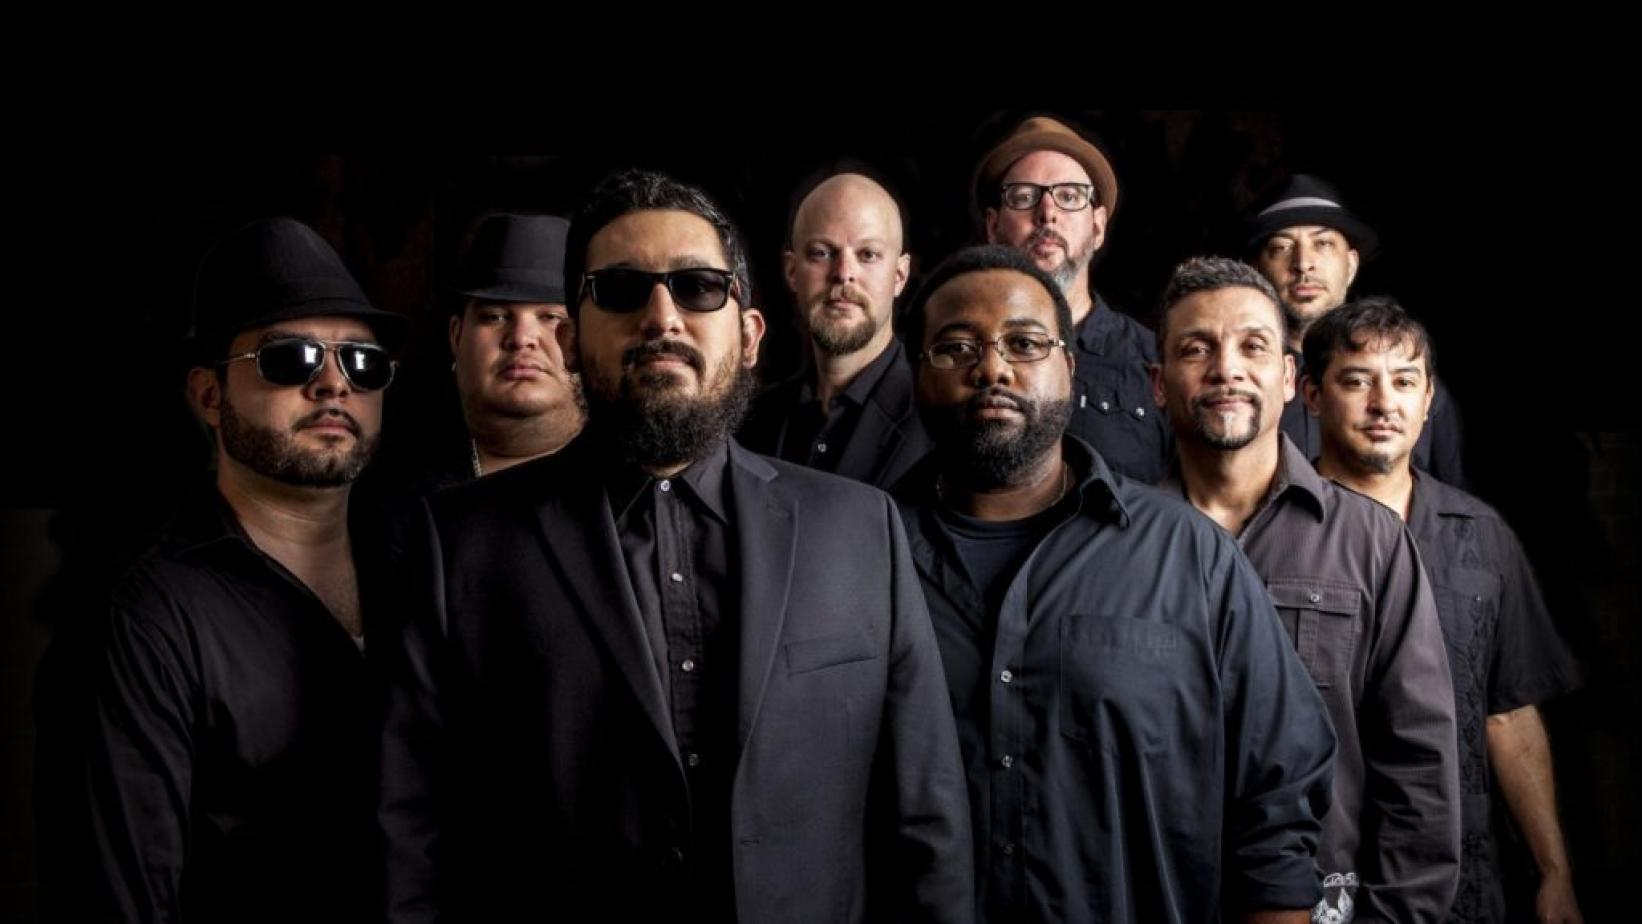 Grupo Fantasma official press photo